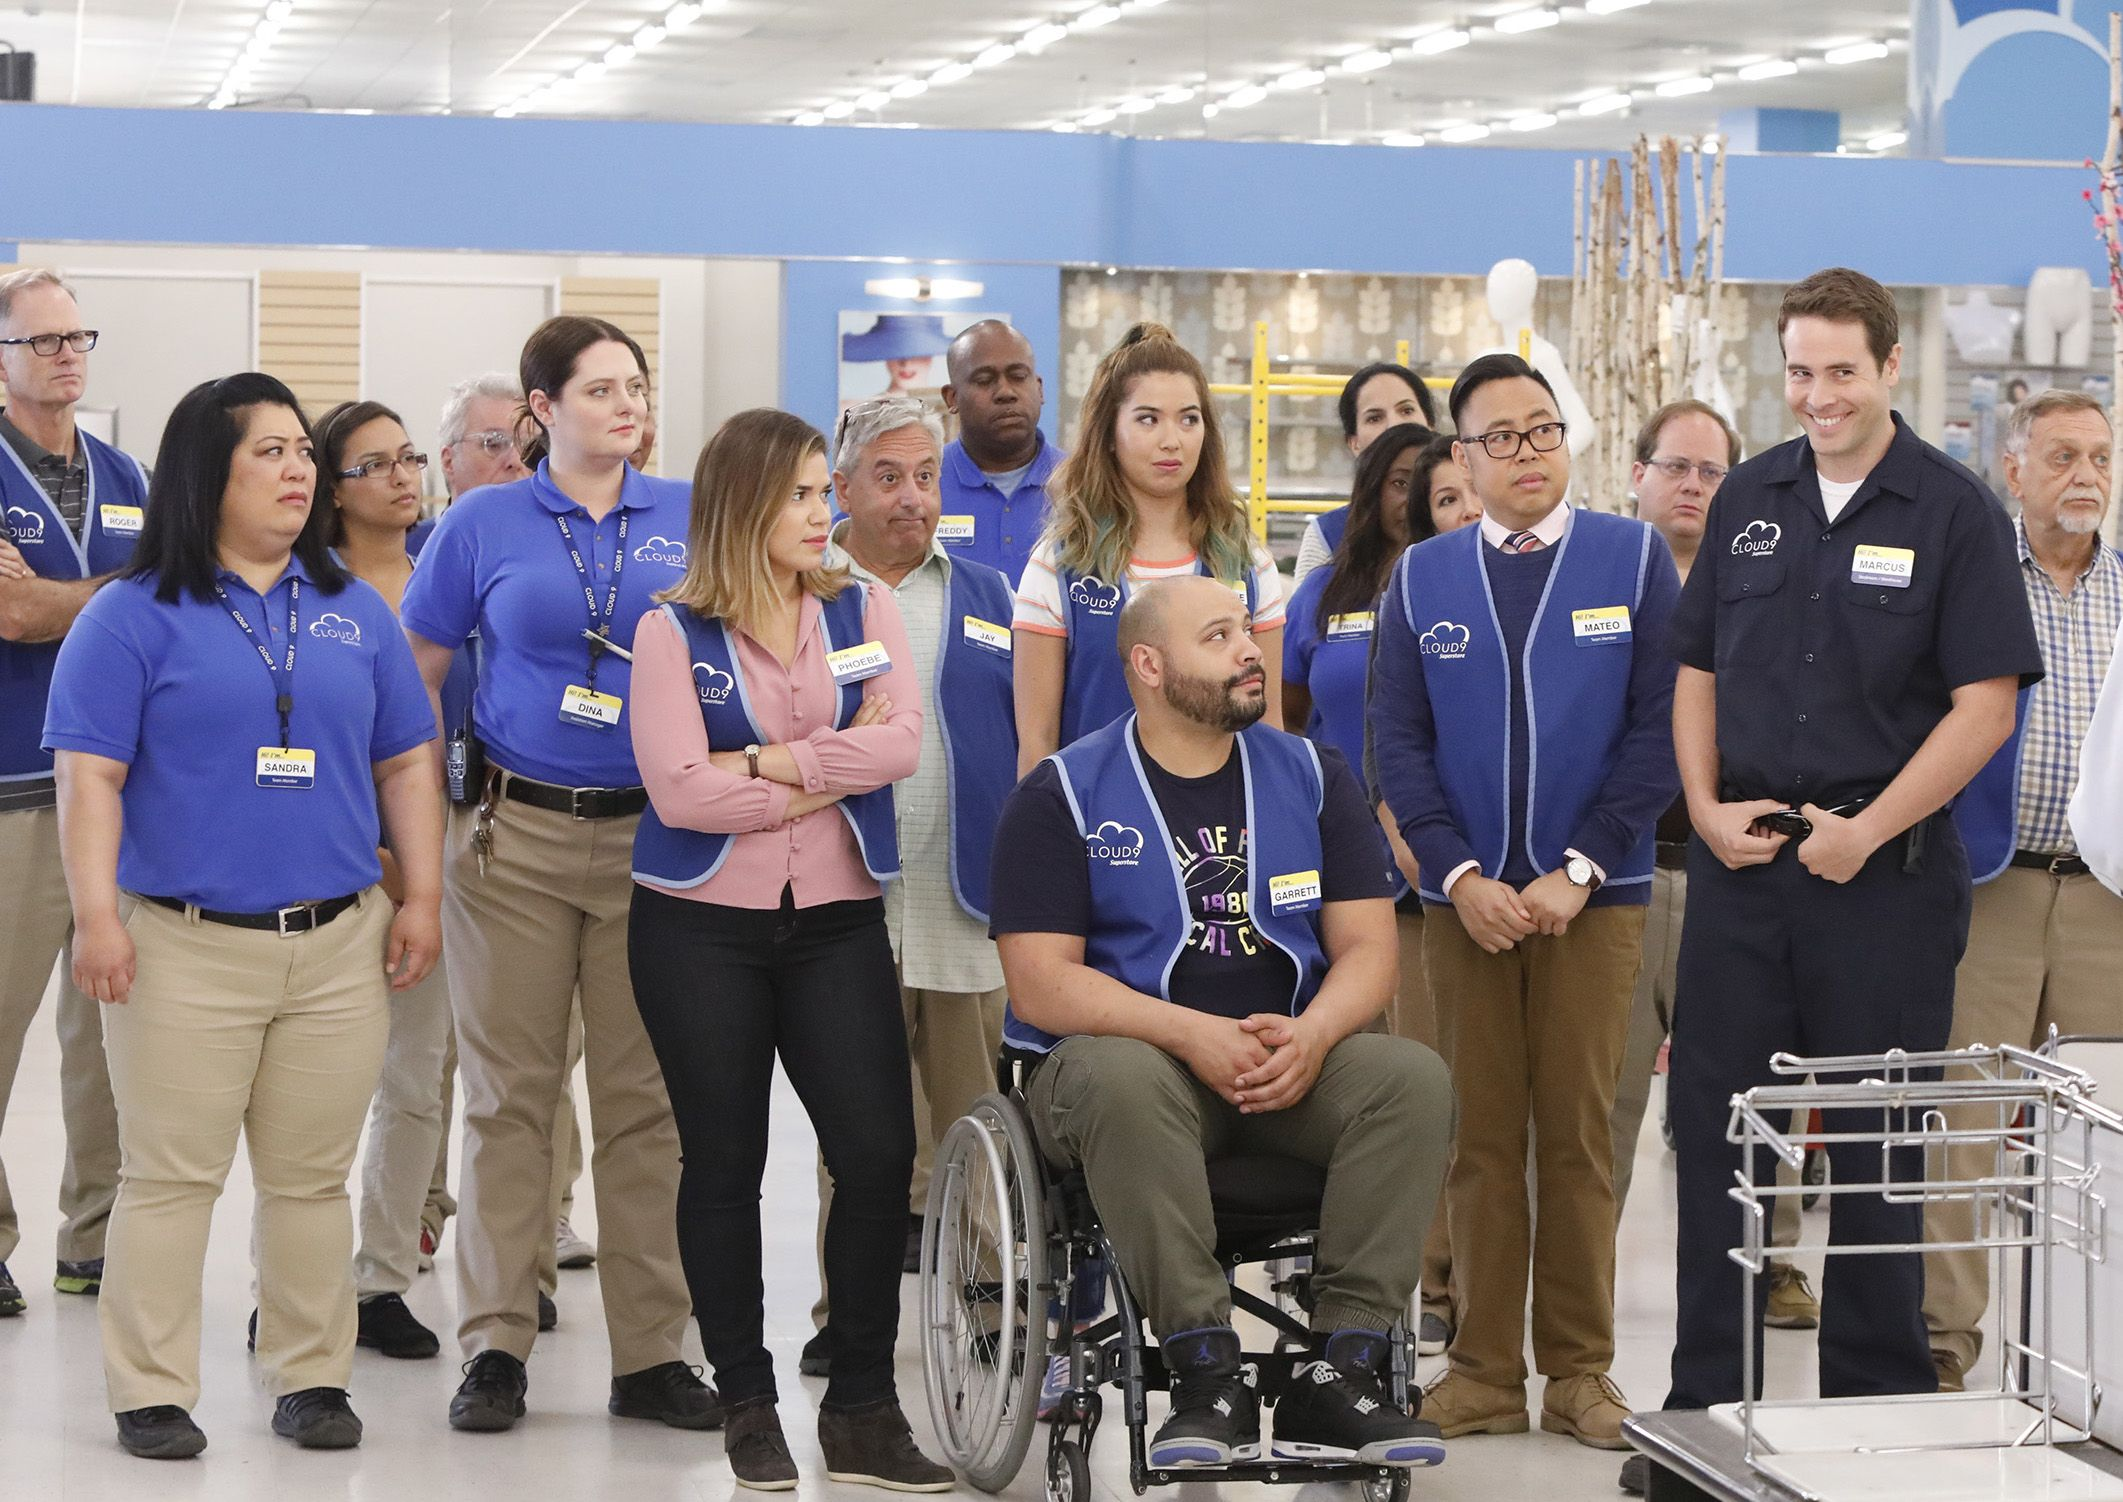 NBC's 'Superstore' Understands Middle America Better Than Trump